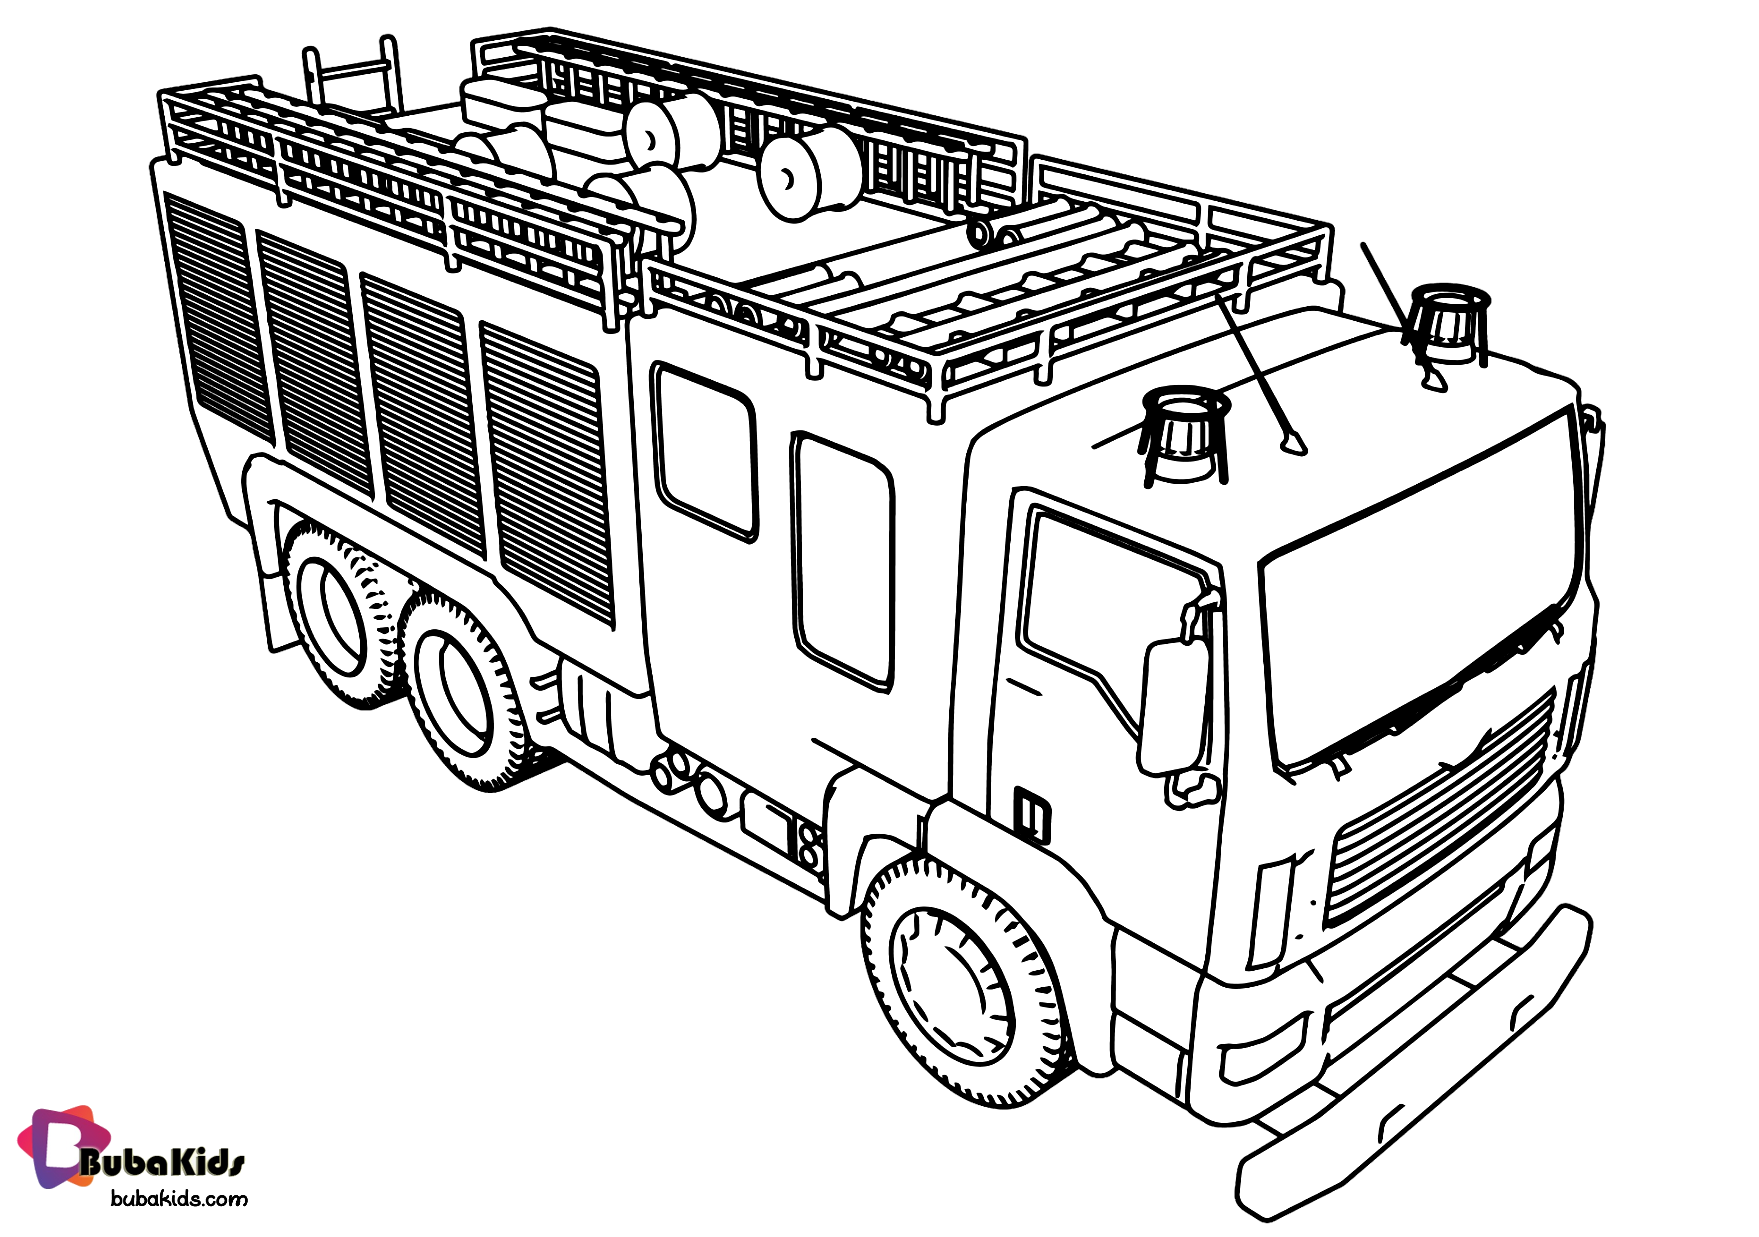 Fire Truck Fire Engine Coloring Page Collection Of Cartoon Coloring Pages For Teenage Printable Truck Coloring Pages Monster Truck Coloring Pages Fire Trucks